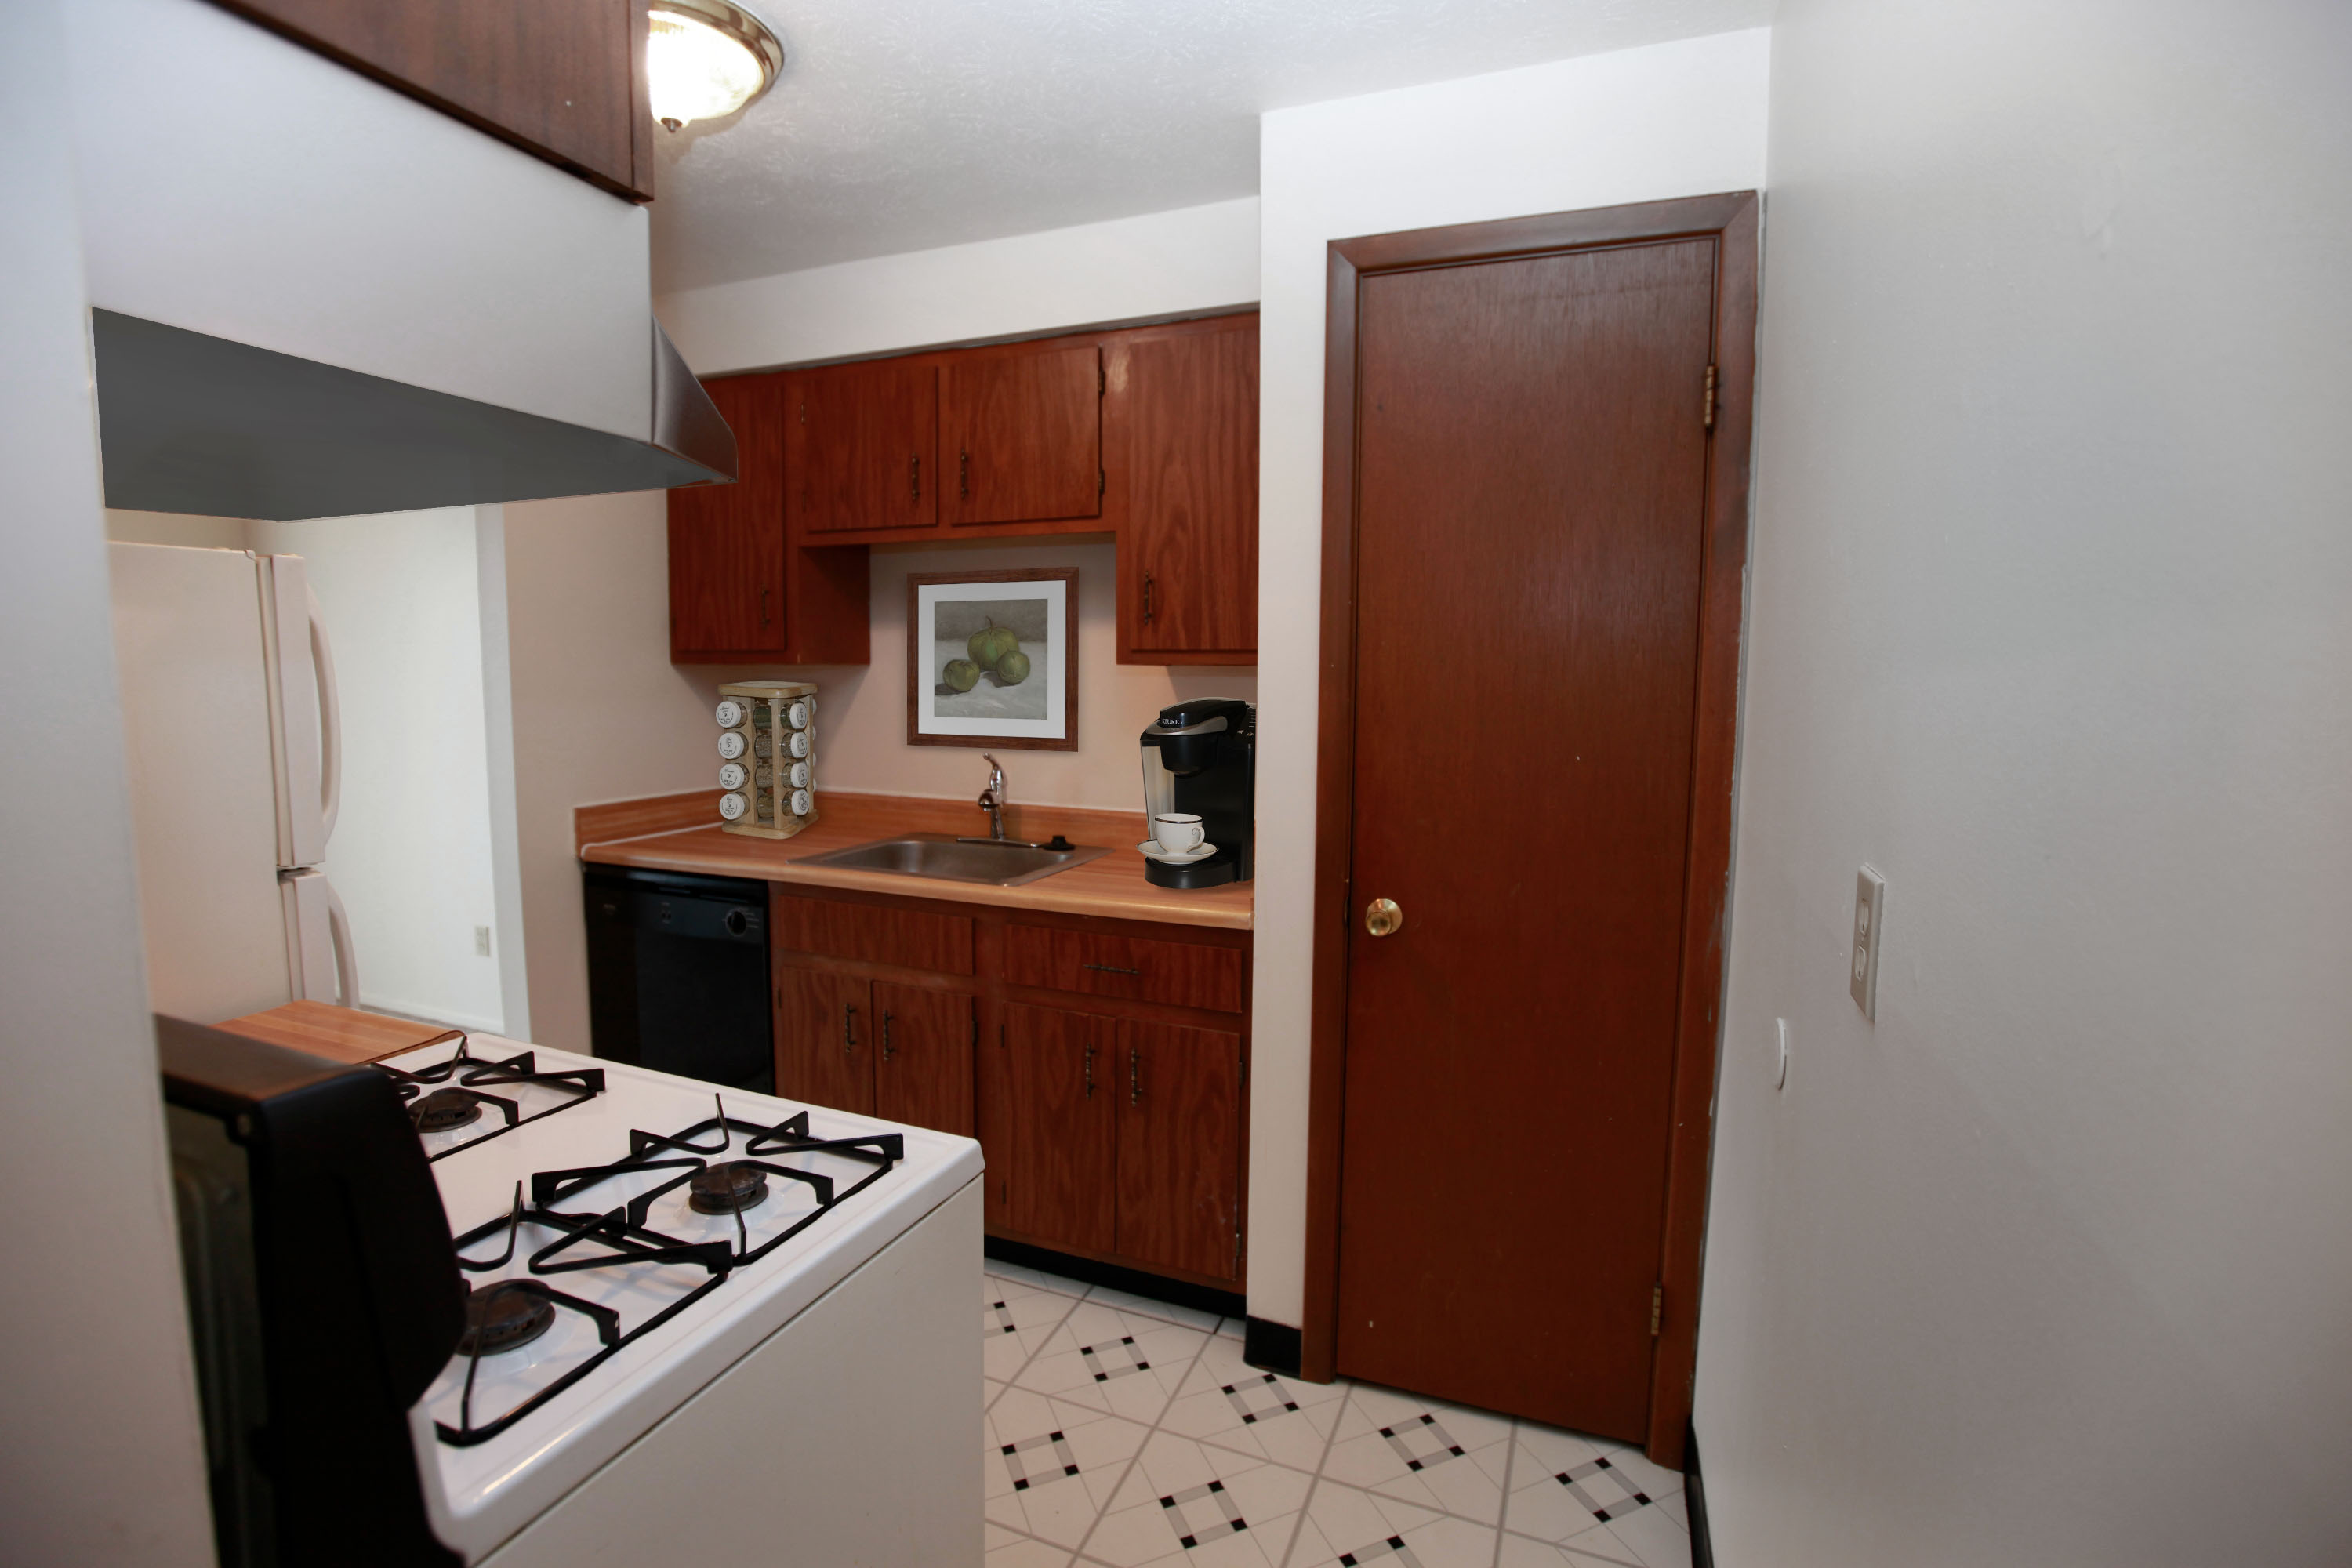 1A Kitchen at the Greenridge on Euclid Apartments in Euclid, OH